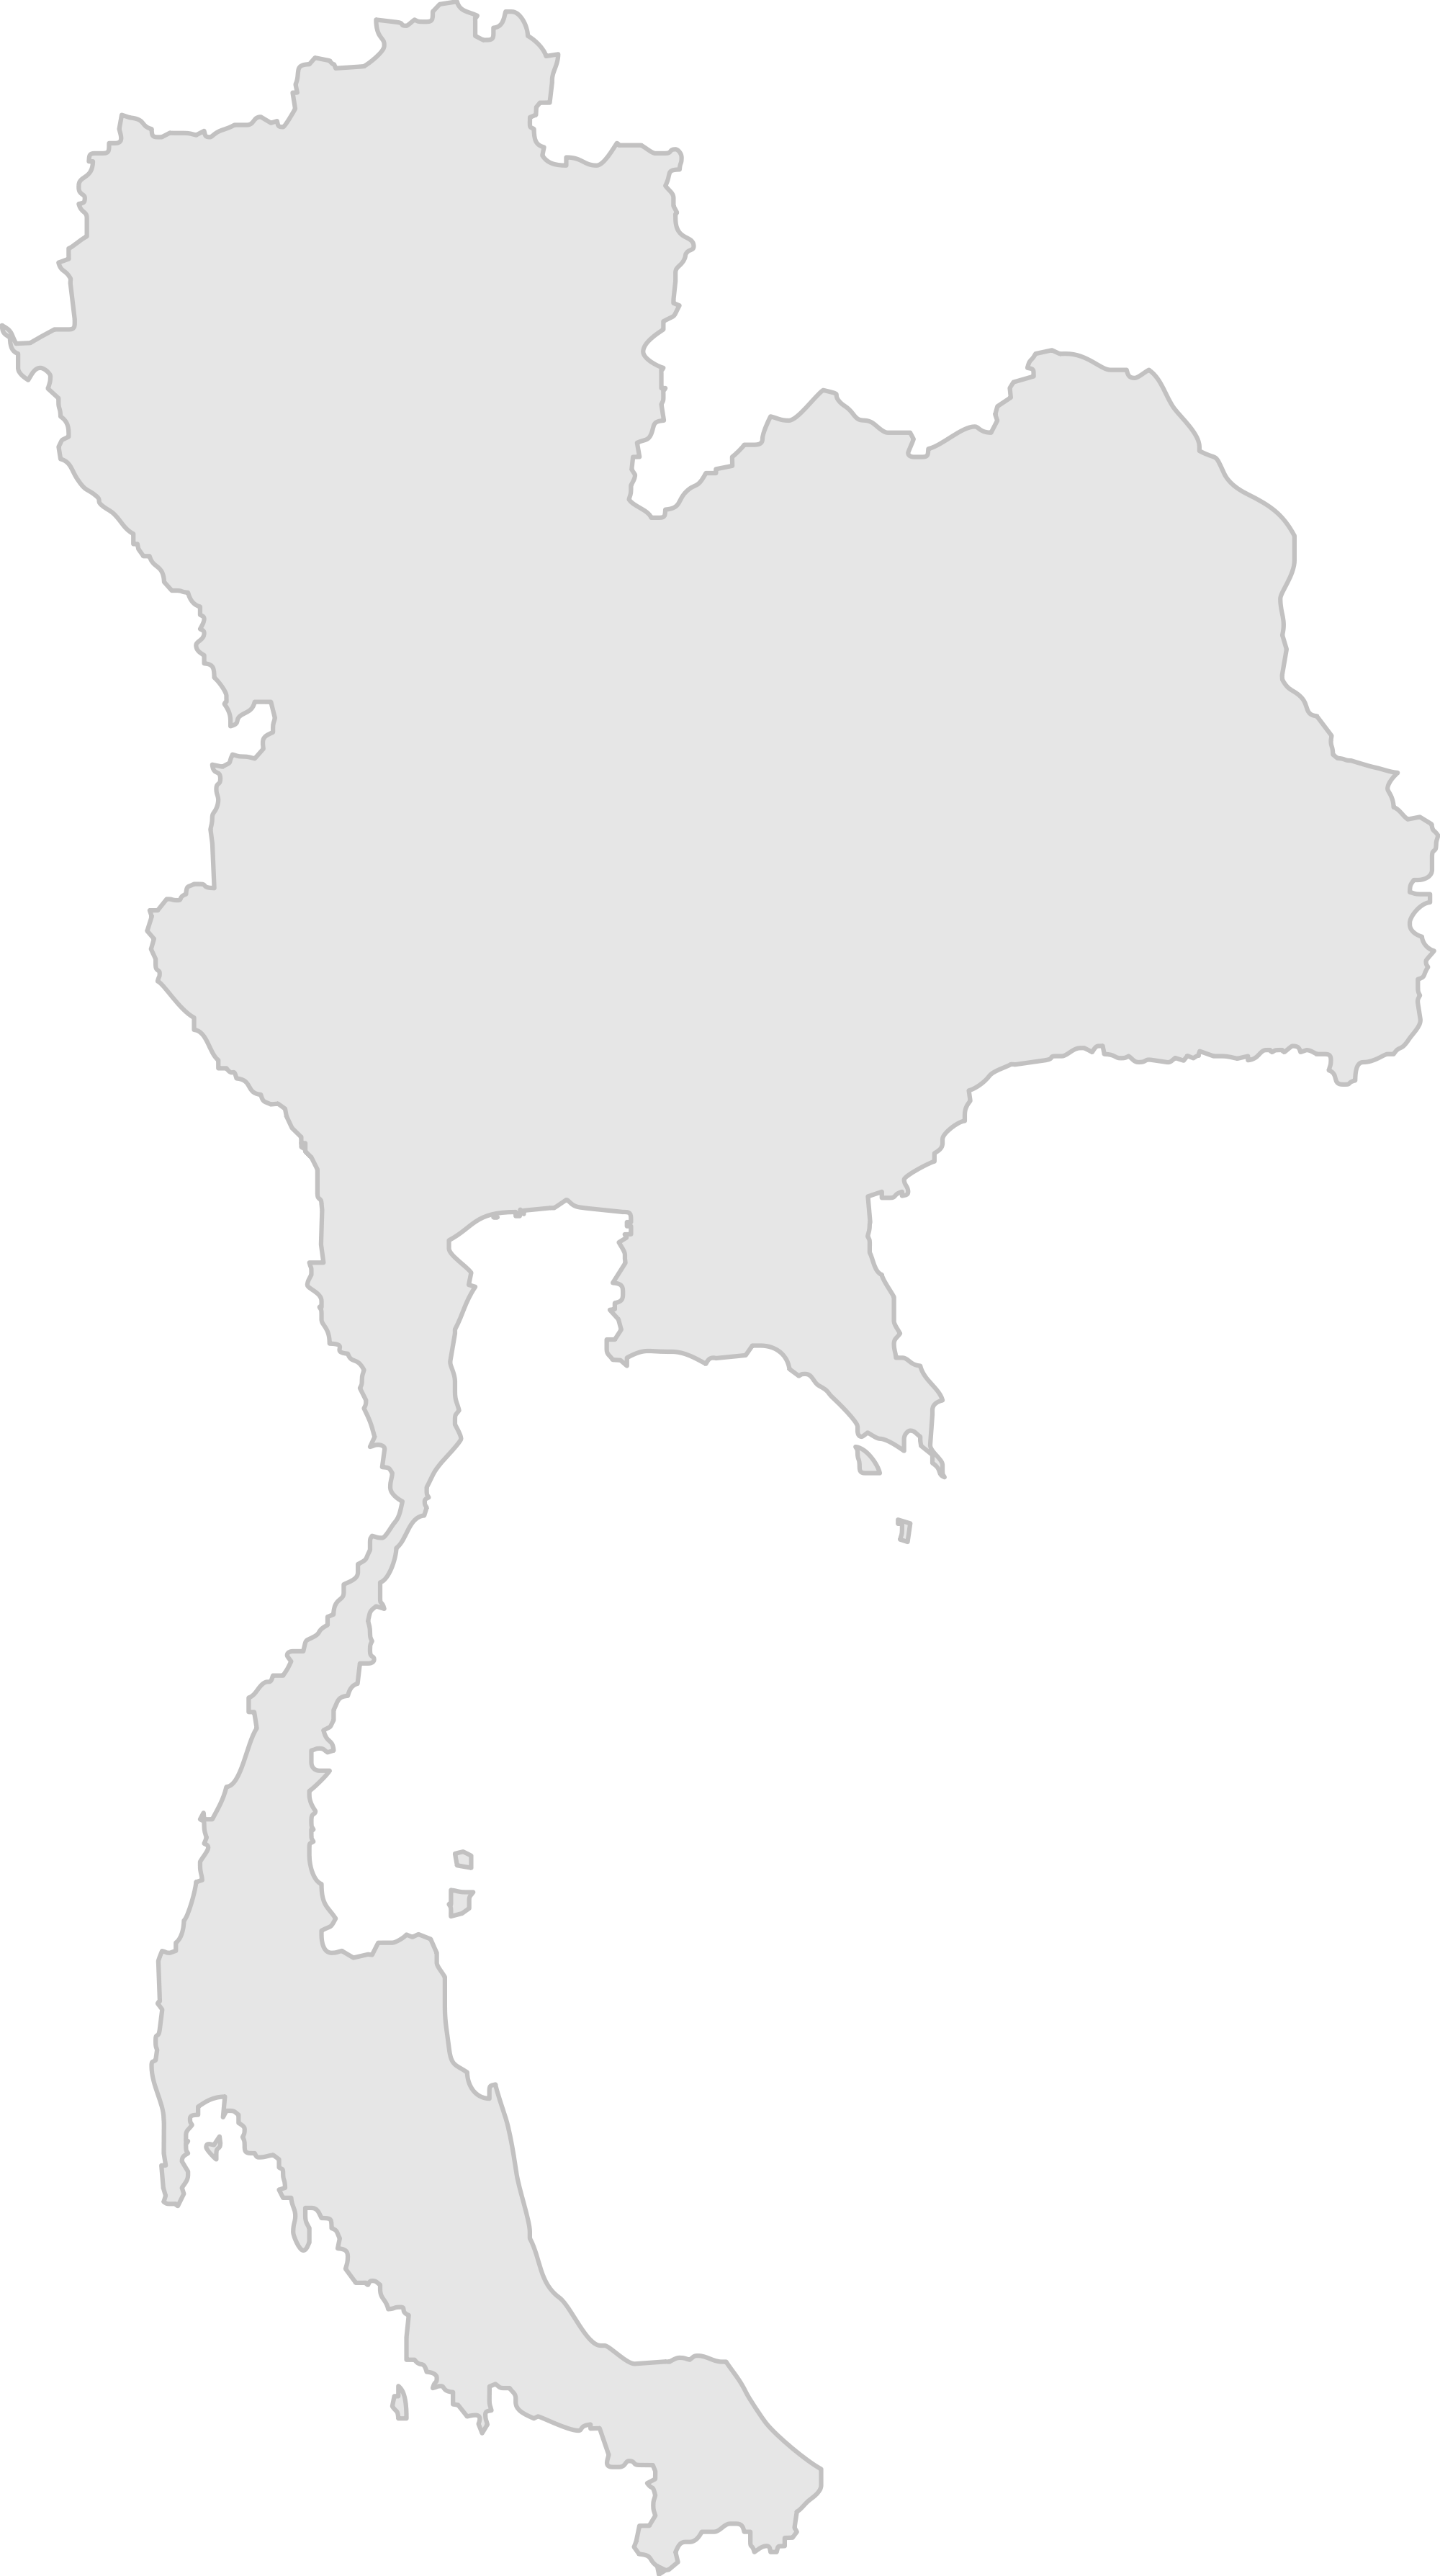 Thailand map png. File of blank svg